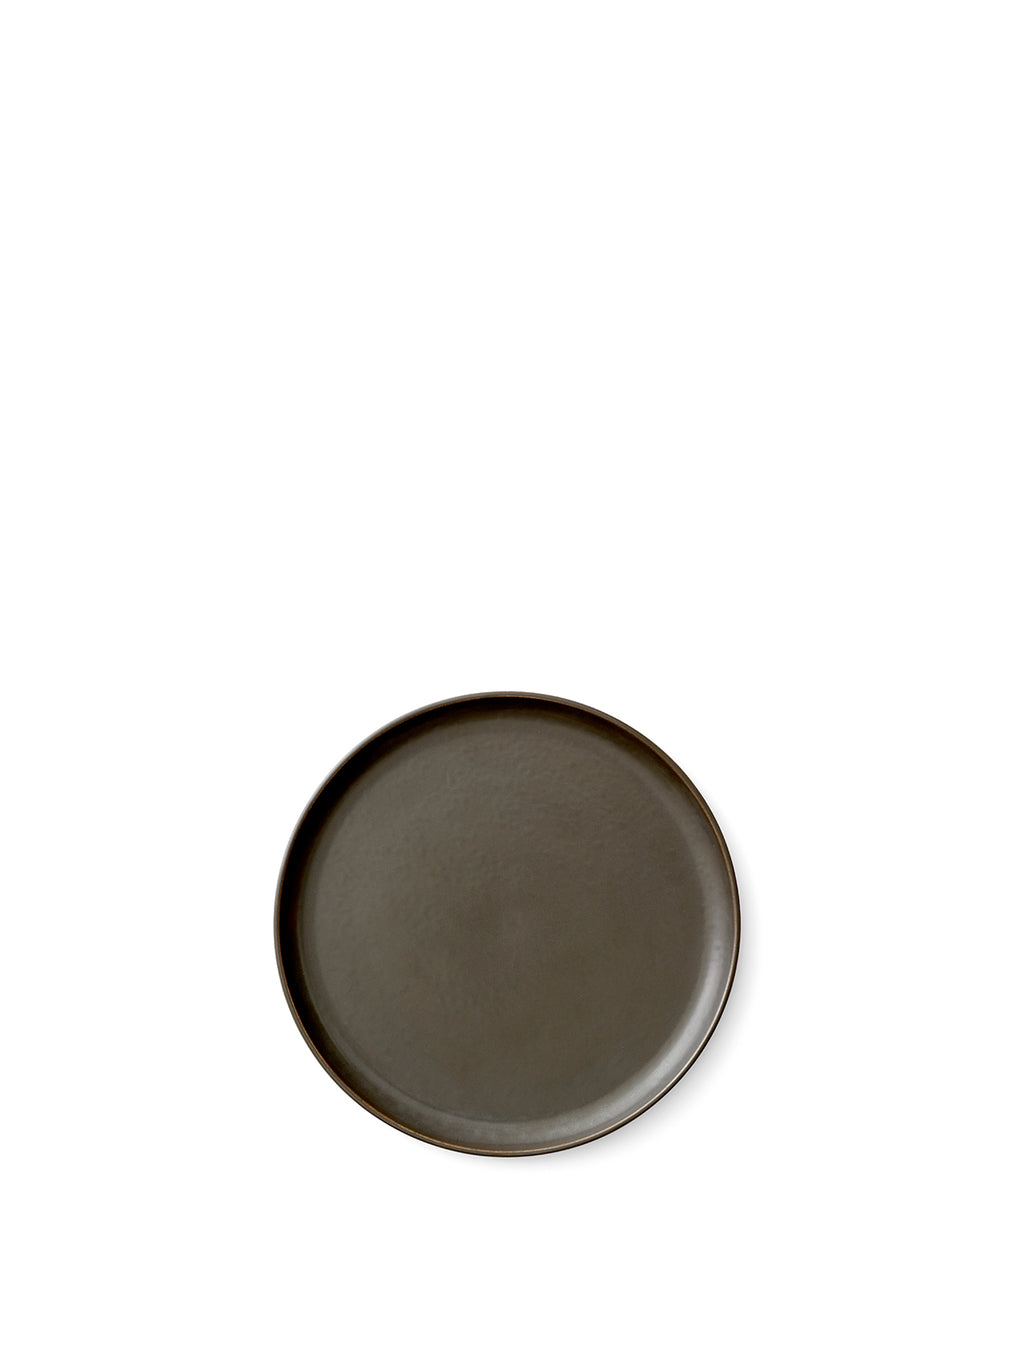 New Norm Lunch Plate By Norm Architects Scandinavian Designed Dinnerware Menu Furniture Decor